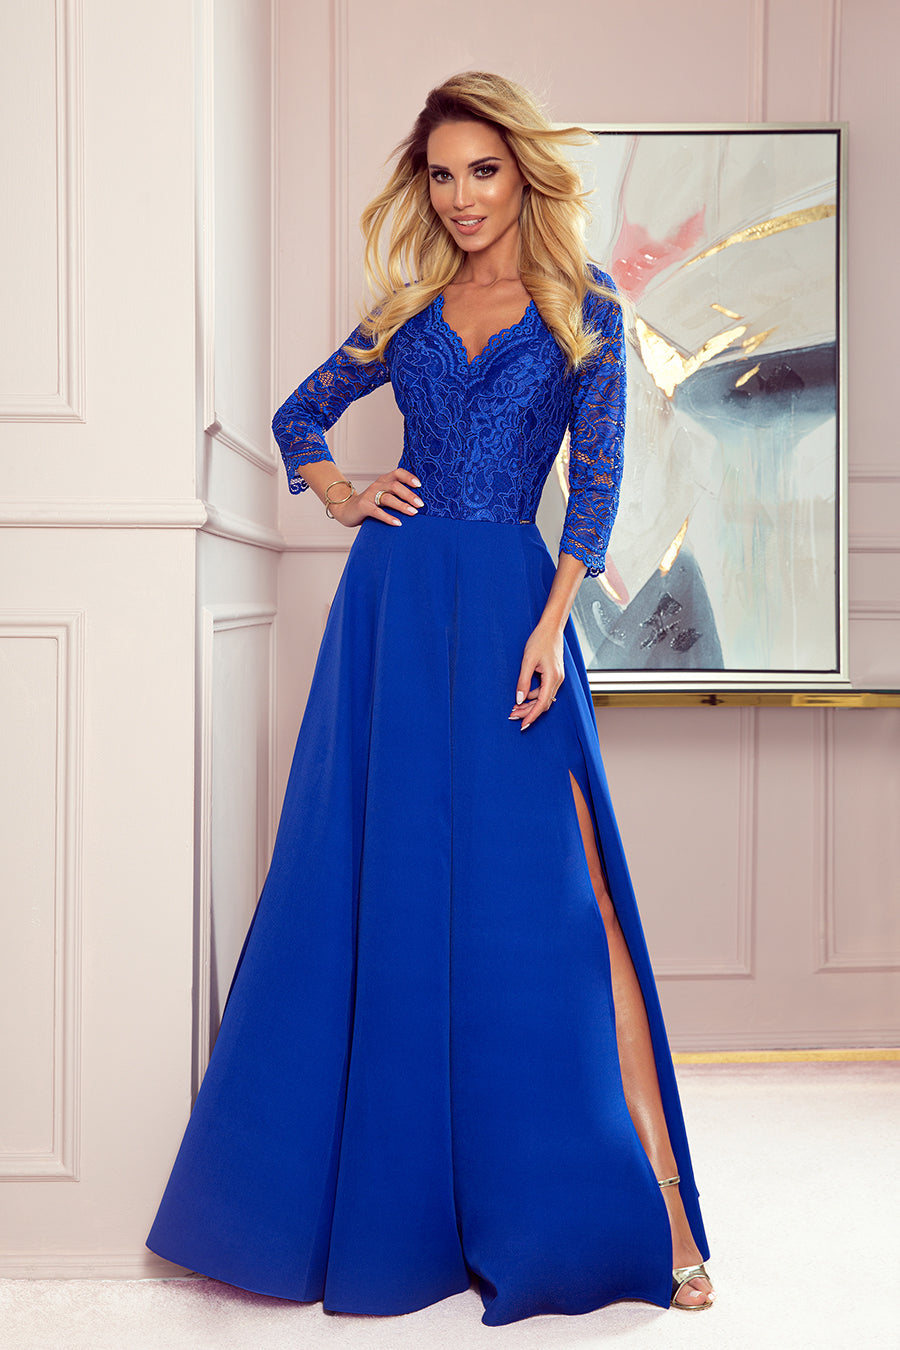 Numoco 309-2 AMBER elegant lace long dress with a neckline - Royal blue